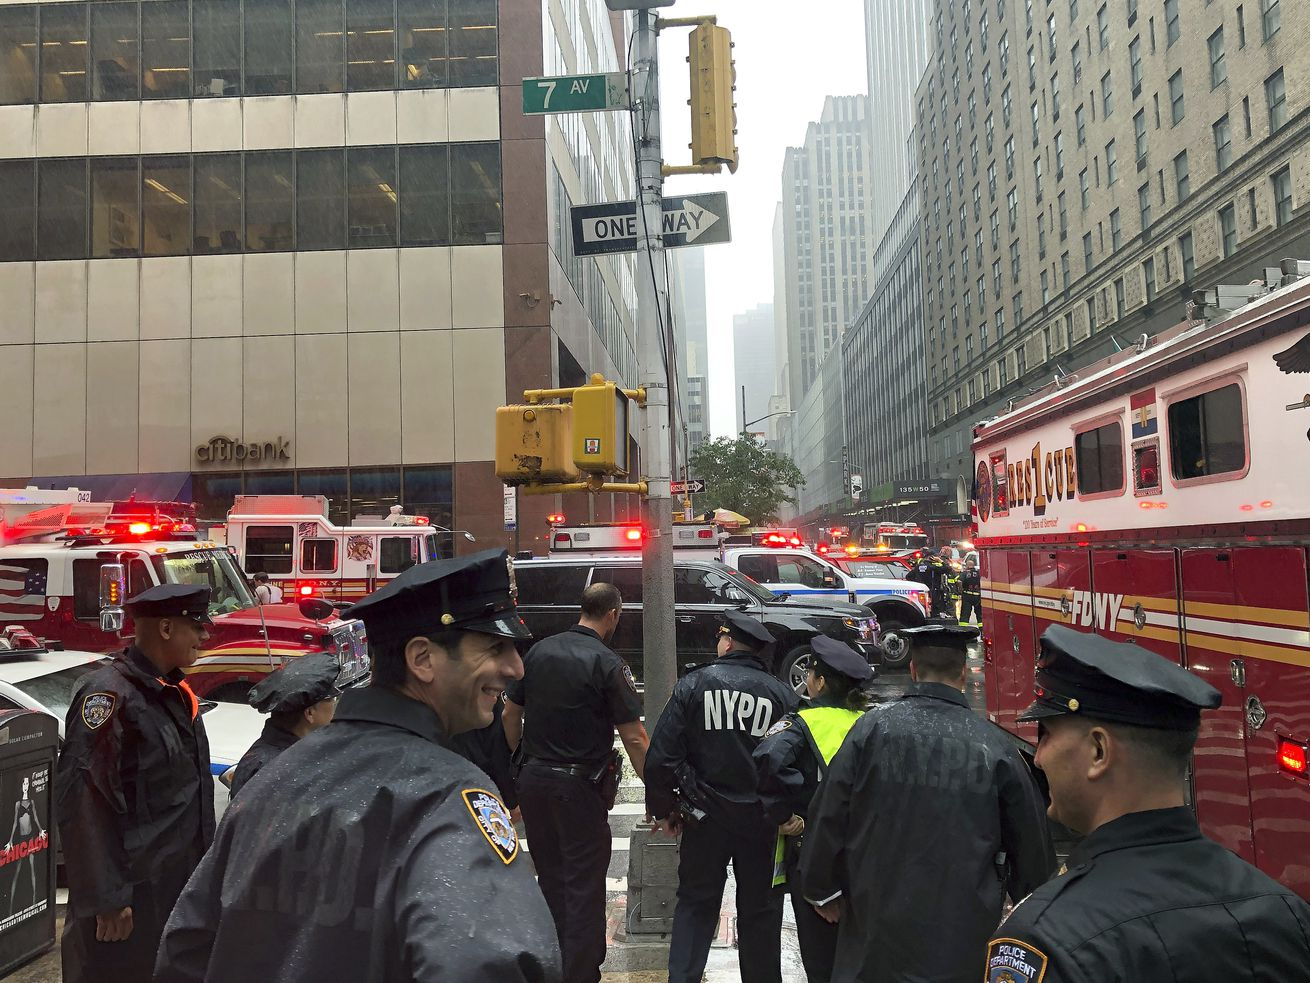 New York police officers monitor the streets near 51st Street and 7th Avenue, Monday, June 10, 2019, in New York, where a helicopter was reported to have crash landed on top of a building in midtown Manhattan.